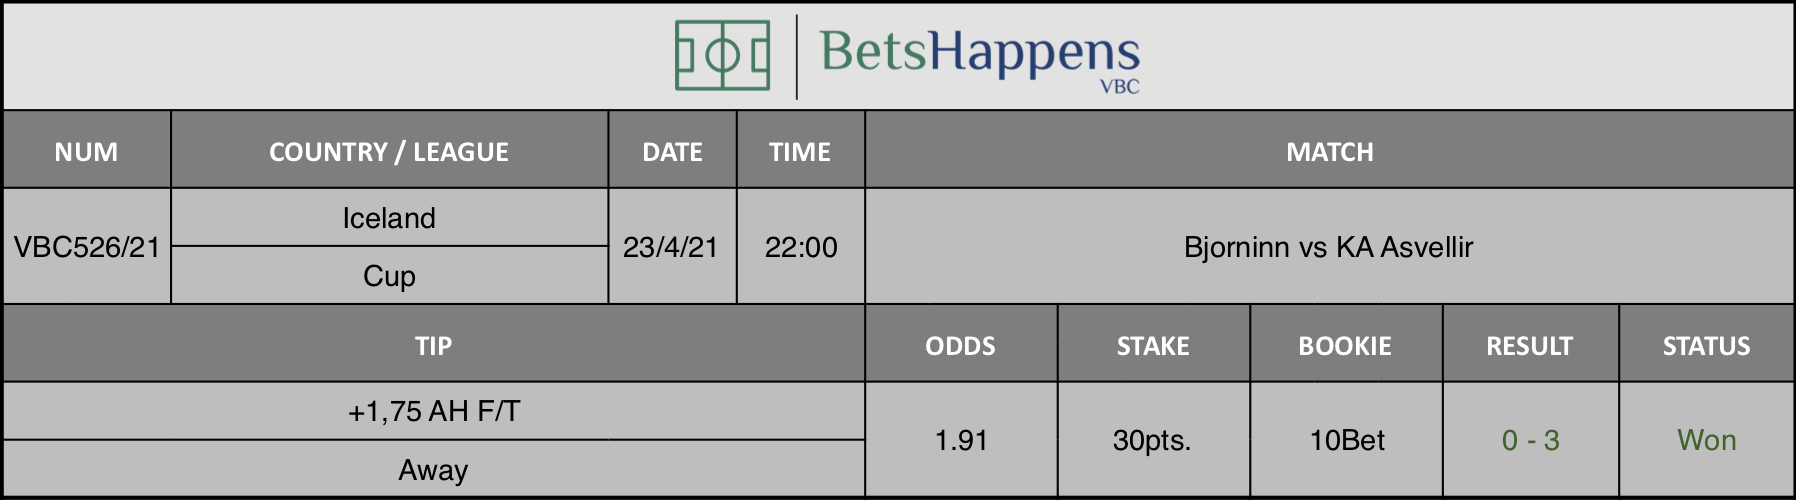 Results of our tip for the Bjorninn vs KA Asvellir match where +1,75 AH F/T Away is recommended.